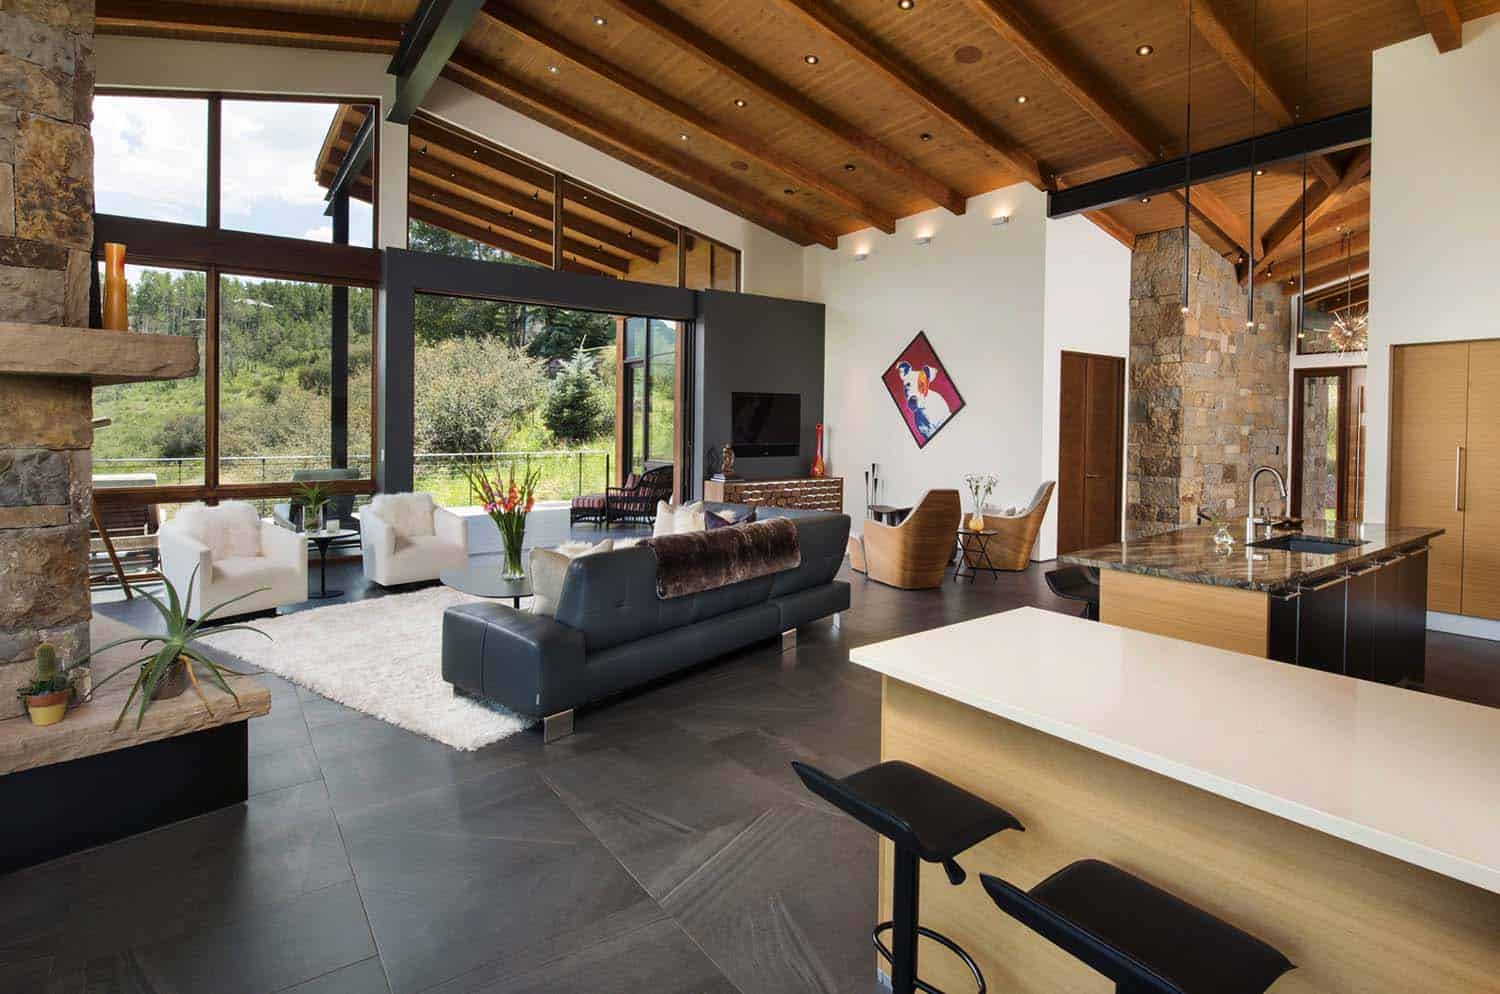 Contemporary Mountain Home Renovation-Berglund Architects-08-1 Kindesign